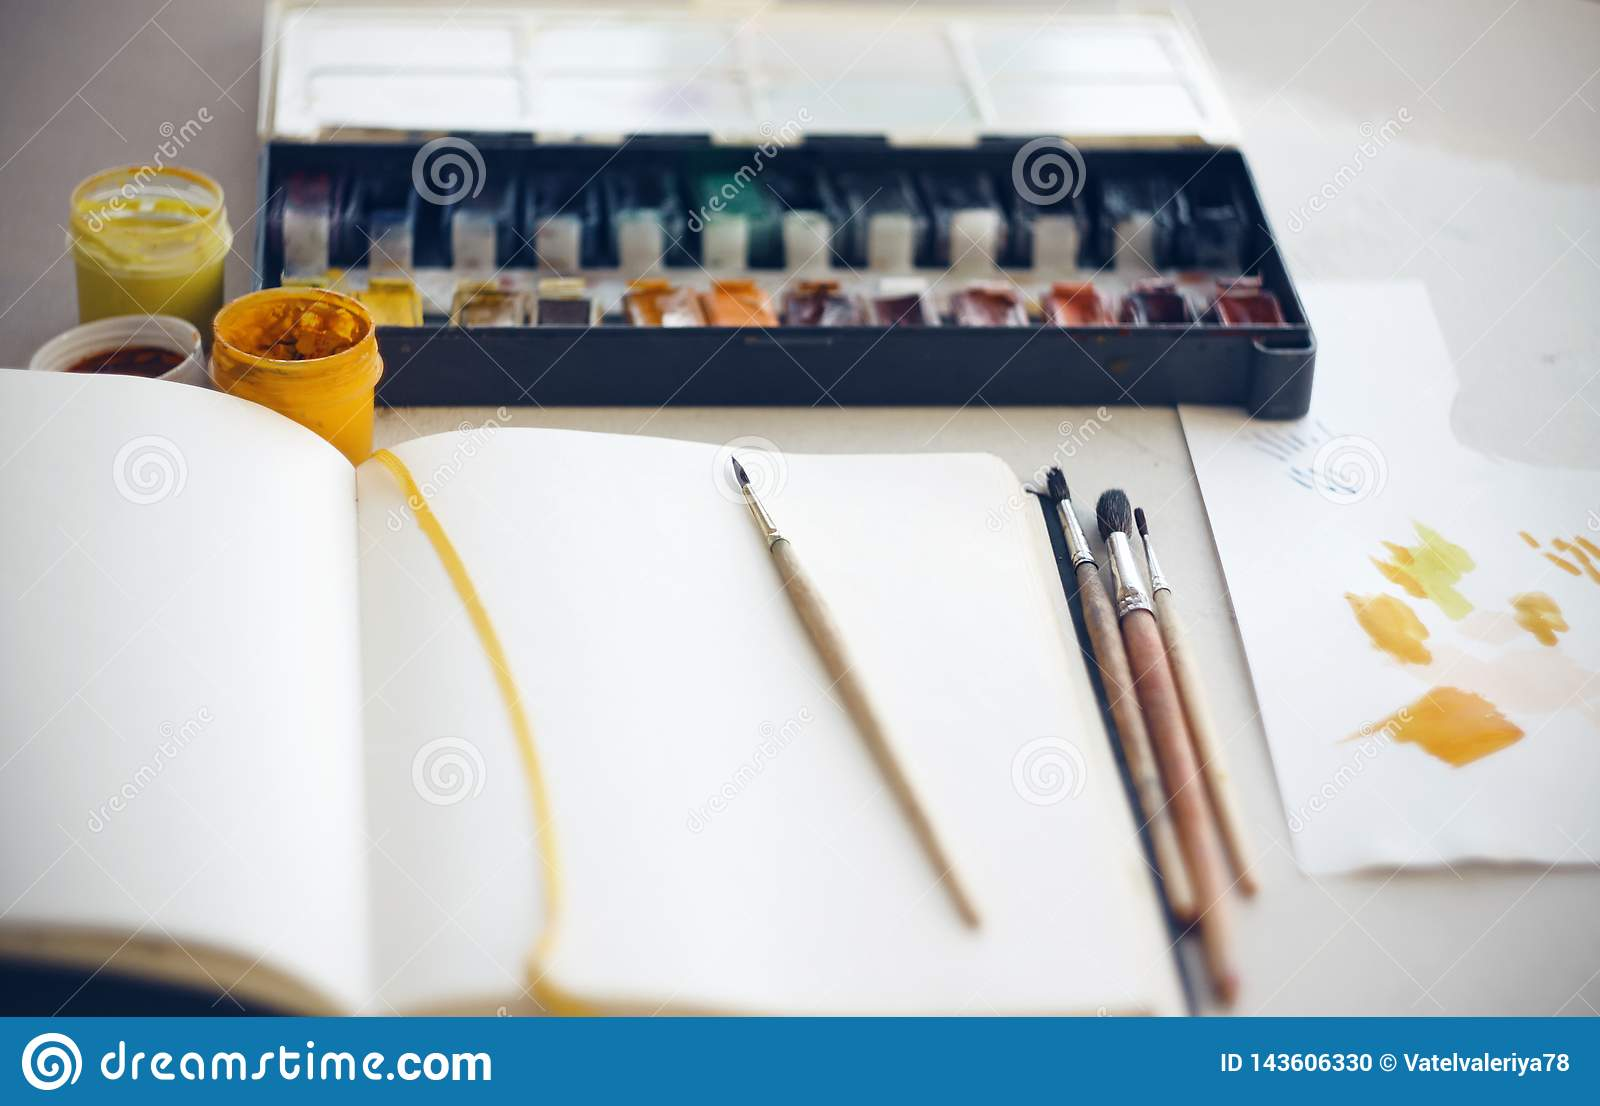 The artist`s Desk on which sketchbook, brushes, watercolor and gouache paints